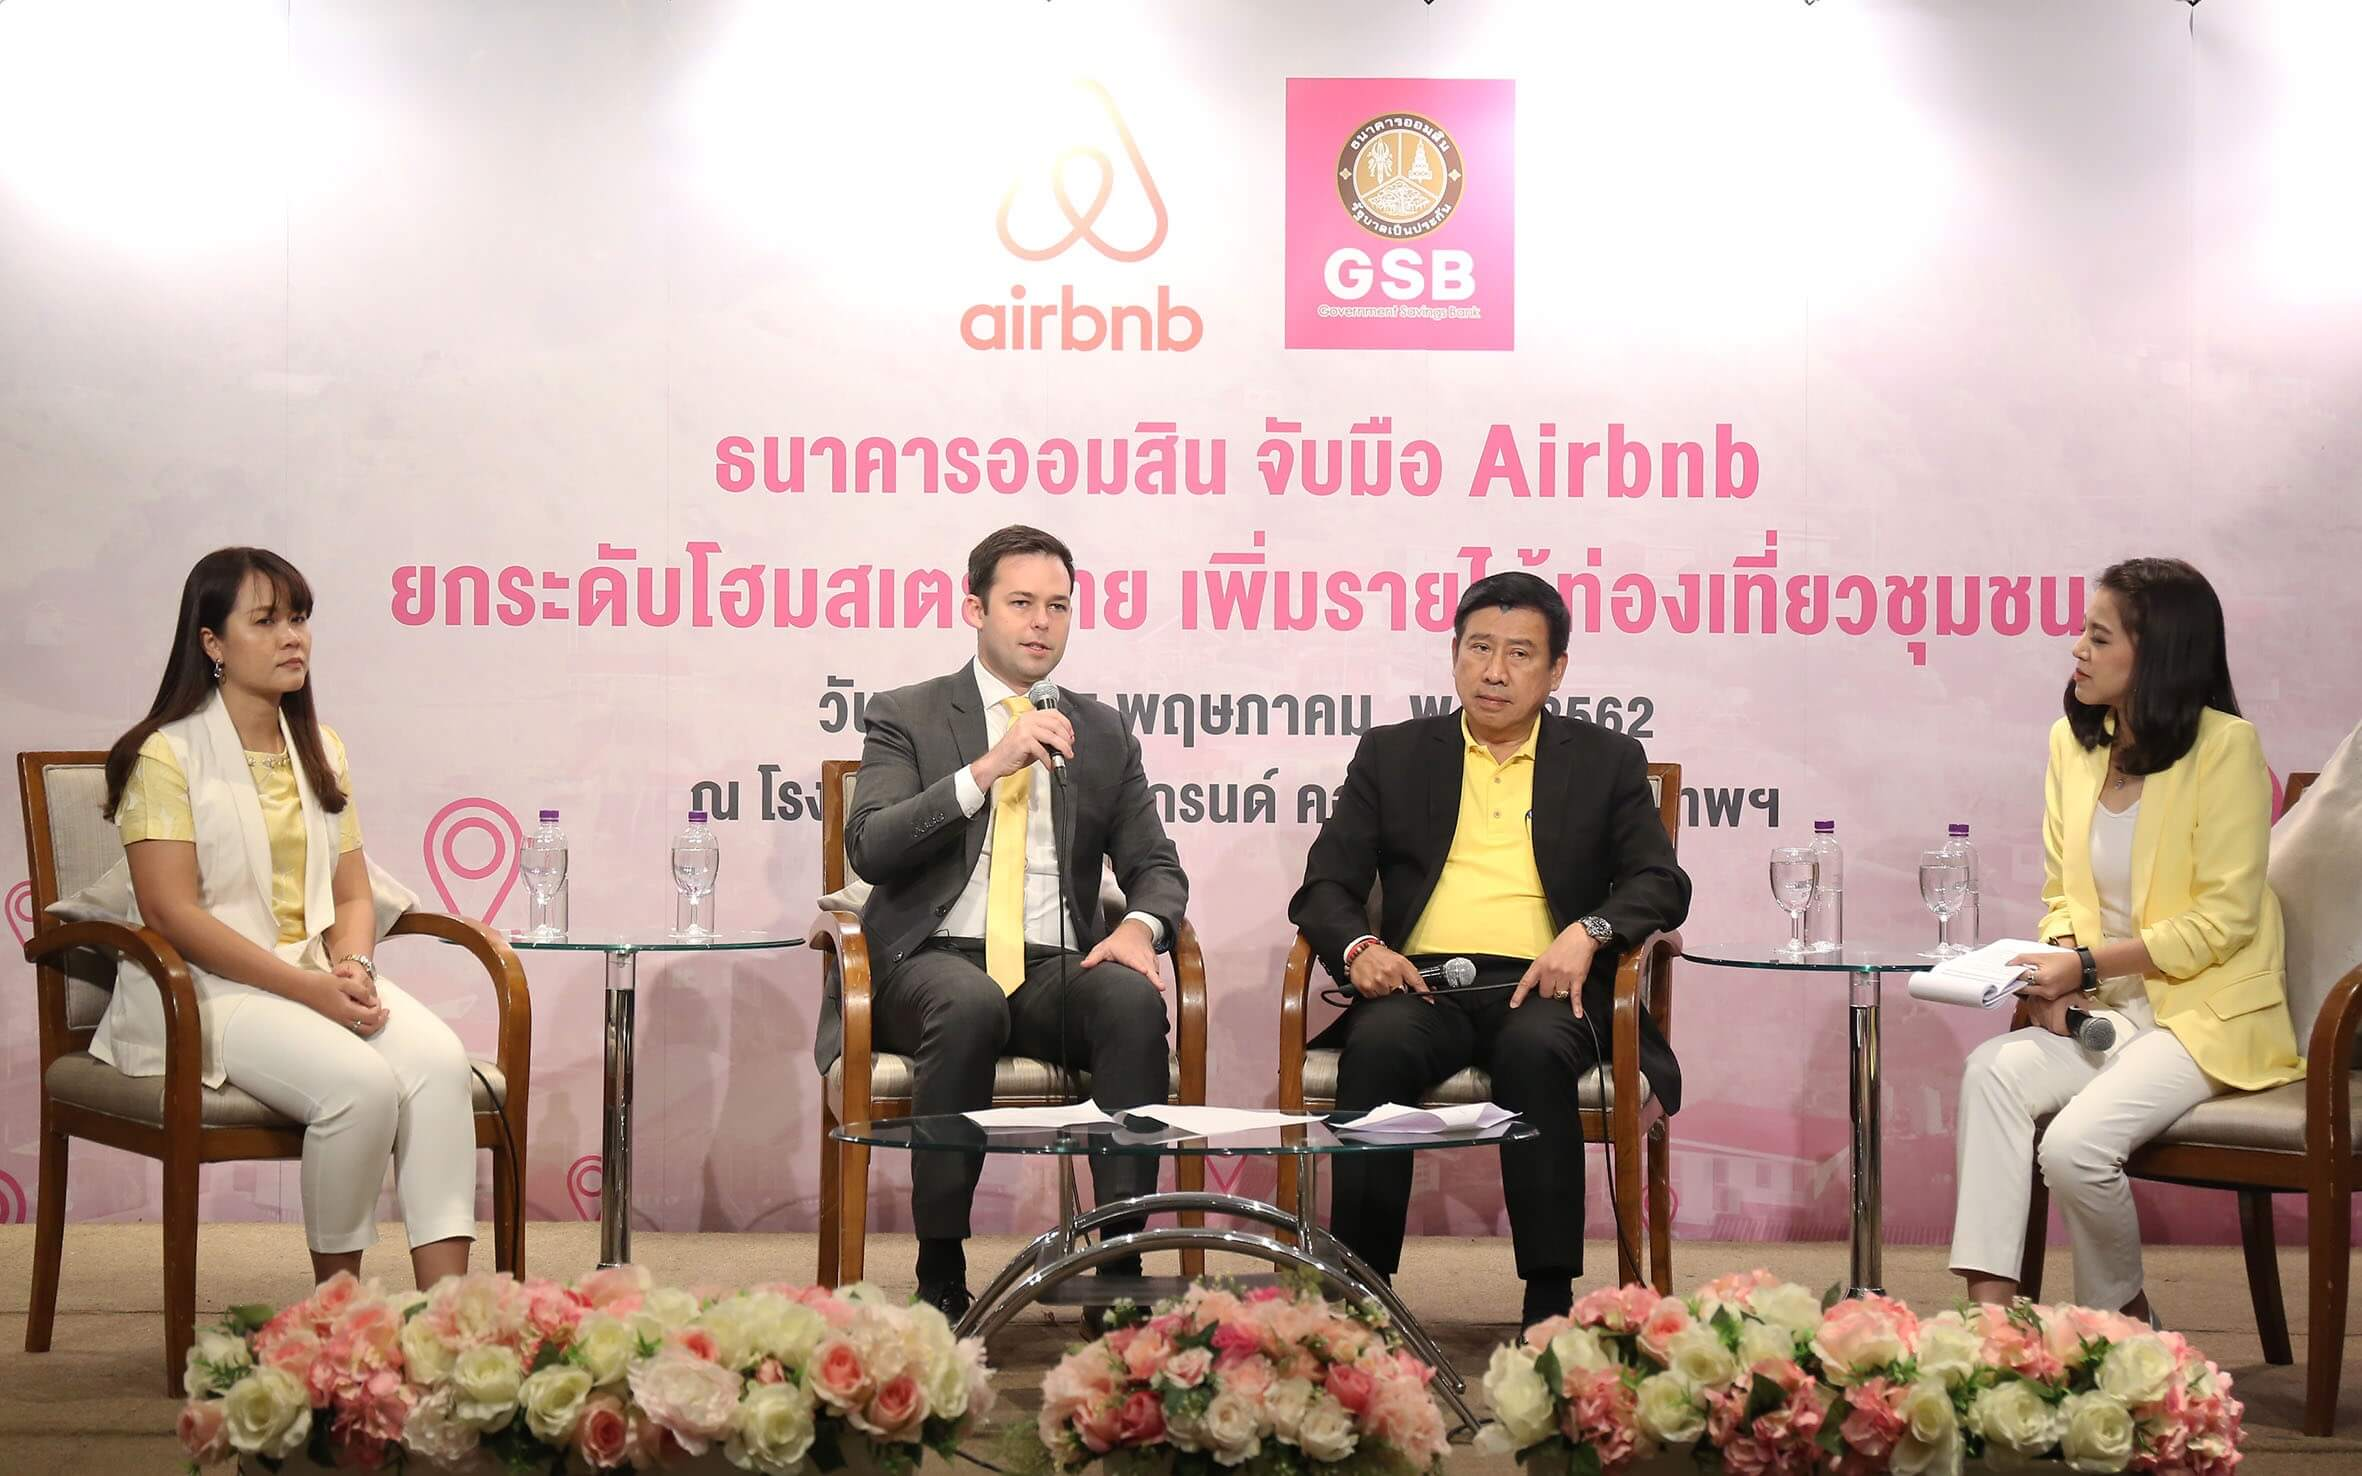 Dr.-Chatchai-Payuhanaveechai-GSB-President-and-CEO-and-Mike-Orgill-Airbnb-General-Manager-for-Southeast-Asia-Hong-Kong-and-Taiwan-conjointement-lance-the-Partnership